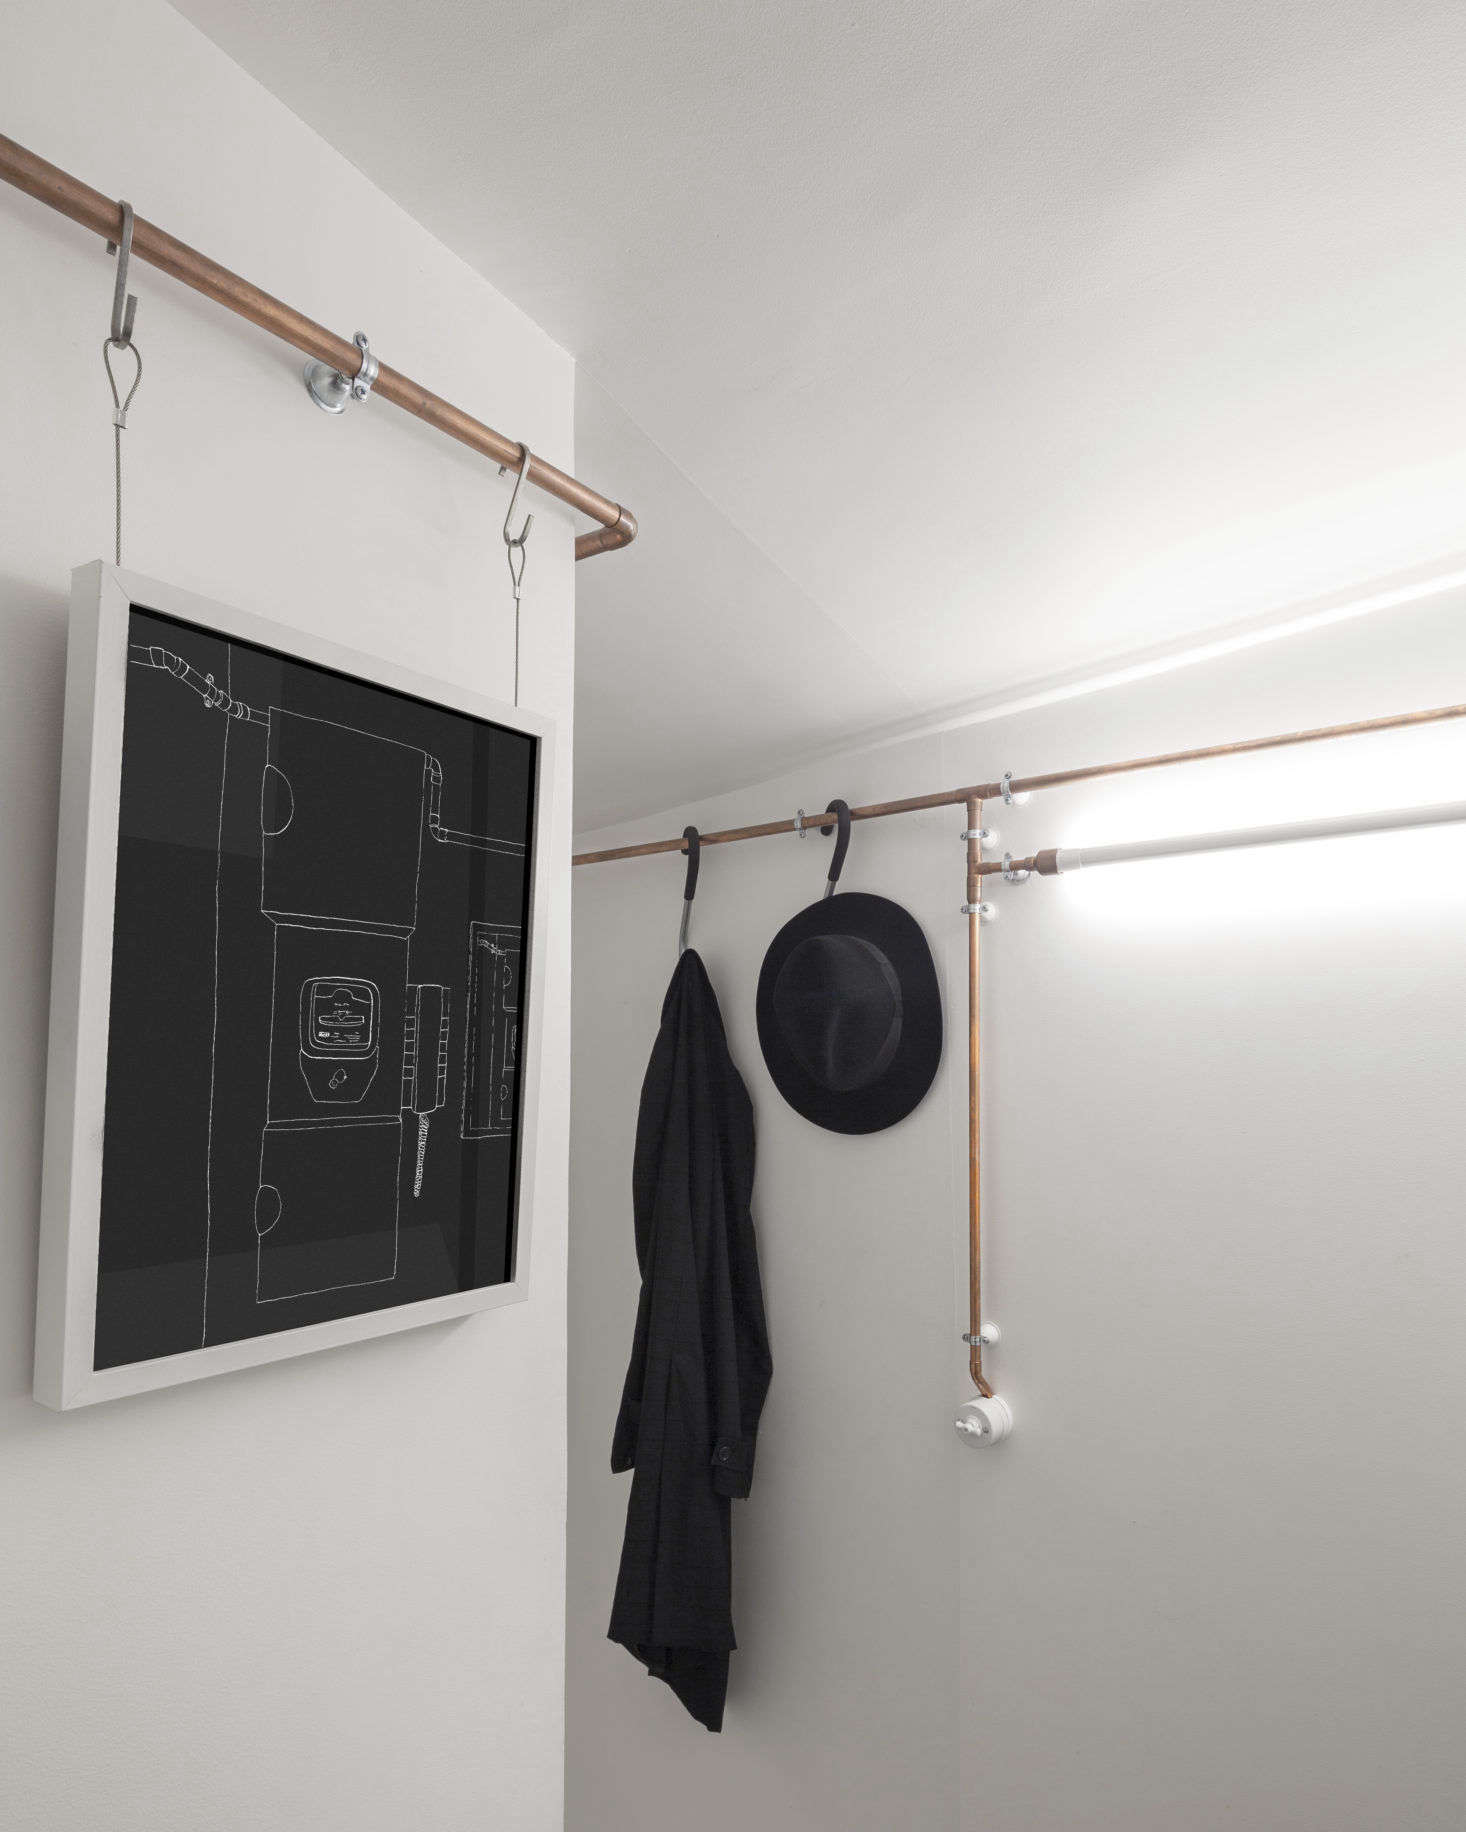 Copper Pipes In Shaker Studio Airbnb In Paris By Ariel